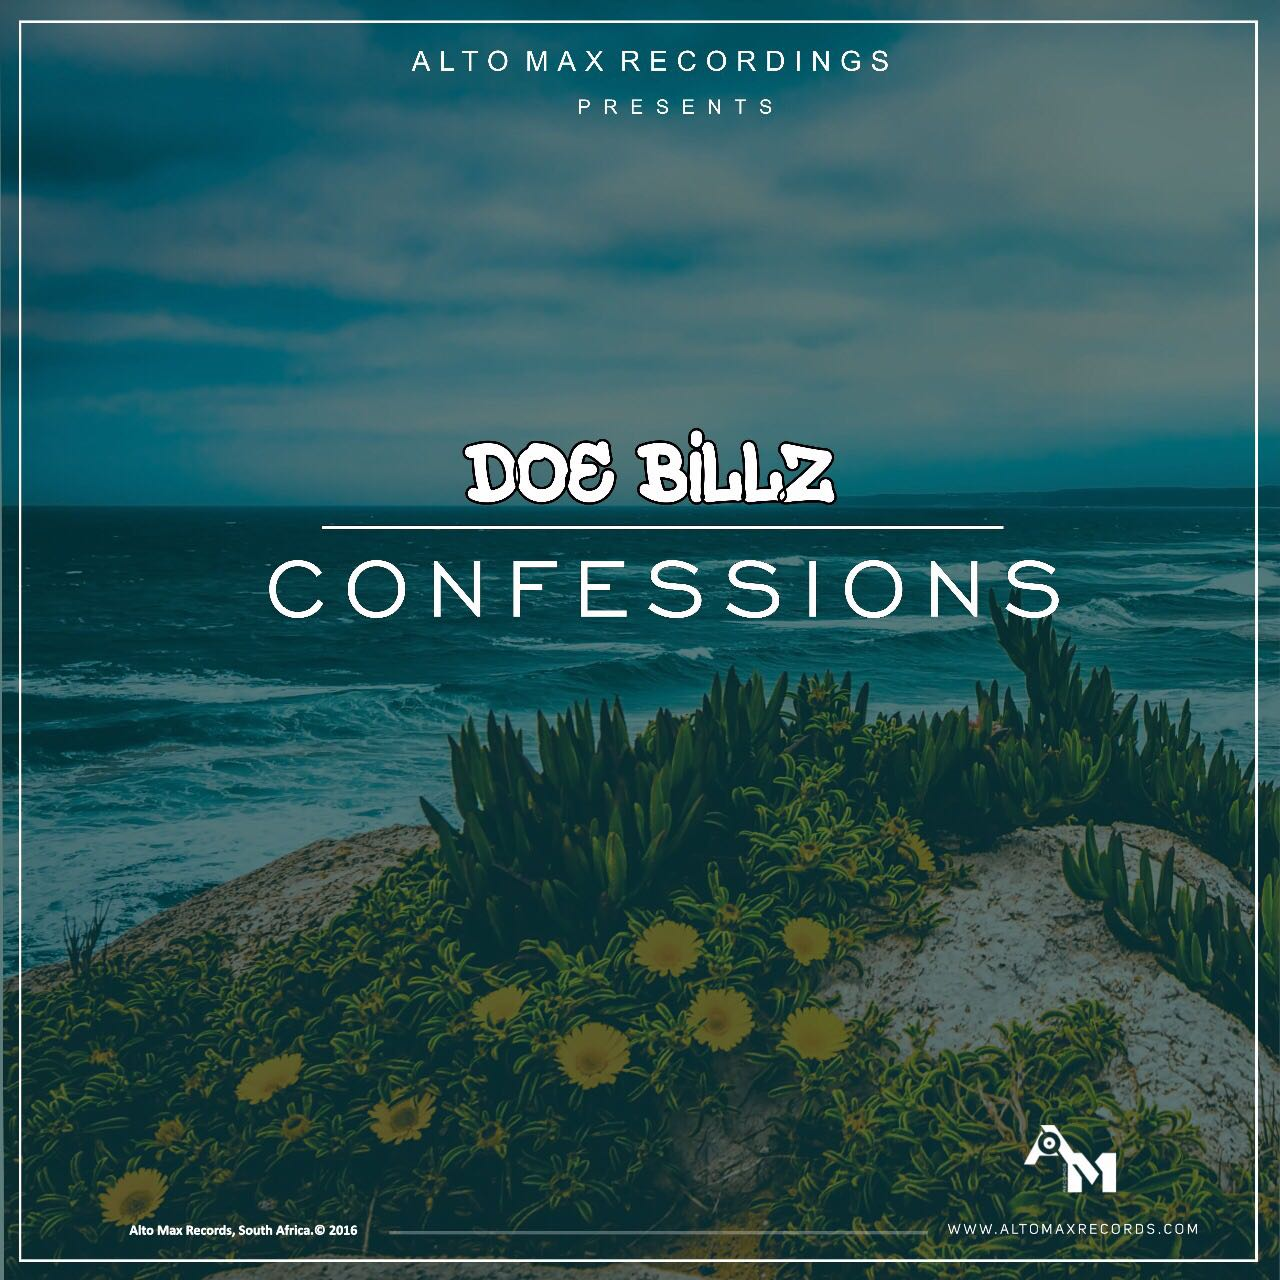 Doe Billz – Confessions